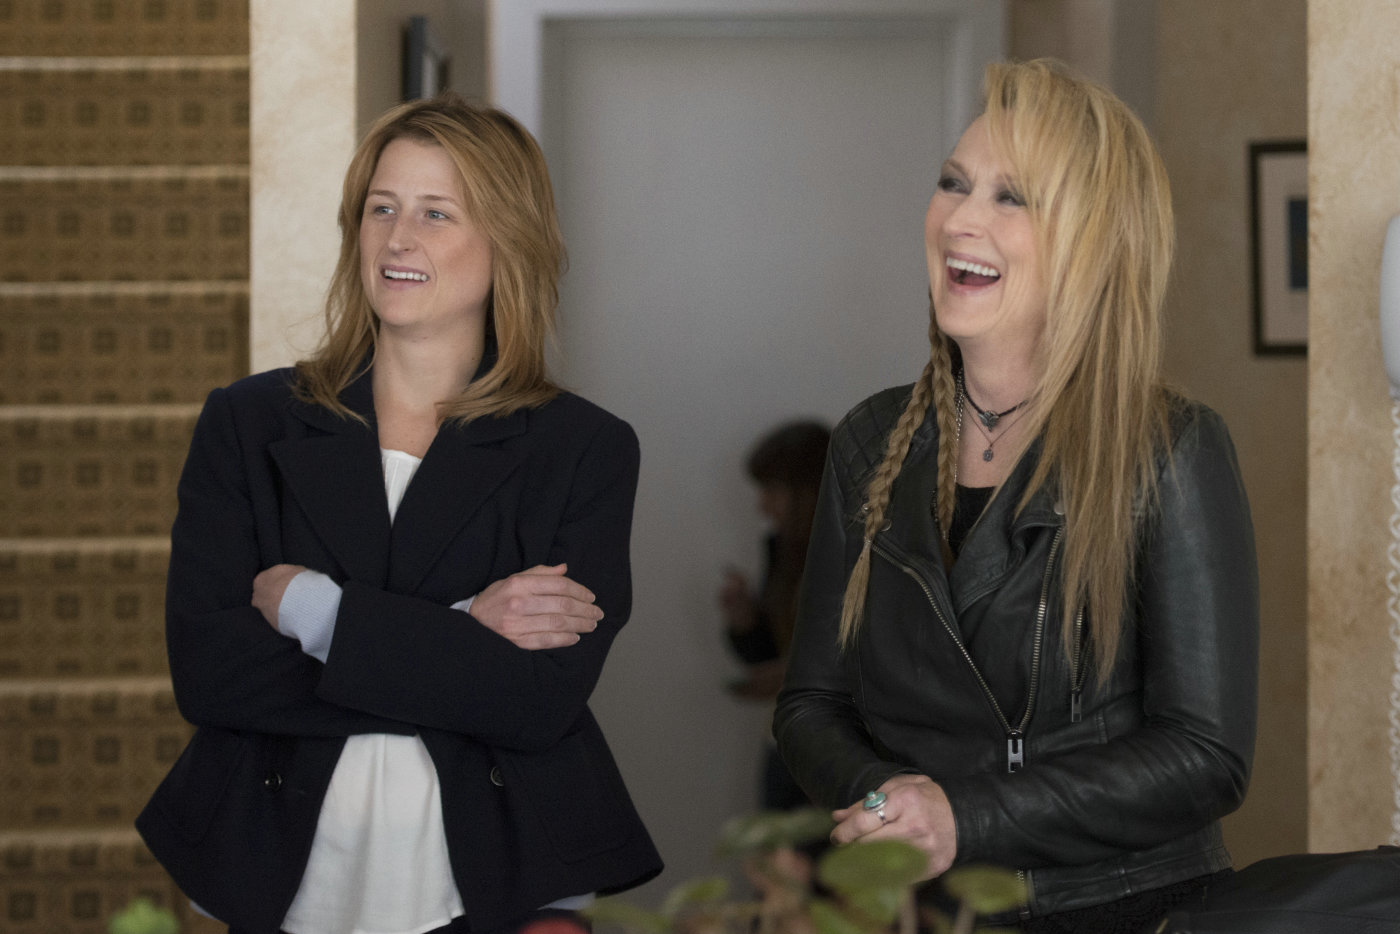 Mamie Gummer e Meryl Streep, filha e mãe na vida real e na ficção em cena de Ricki and the Flash: De Volata Para Casa (photo by outnow.ch)